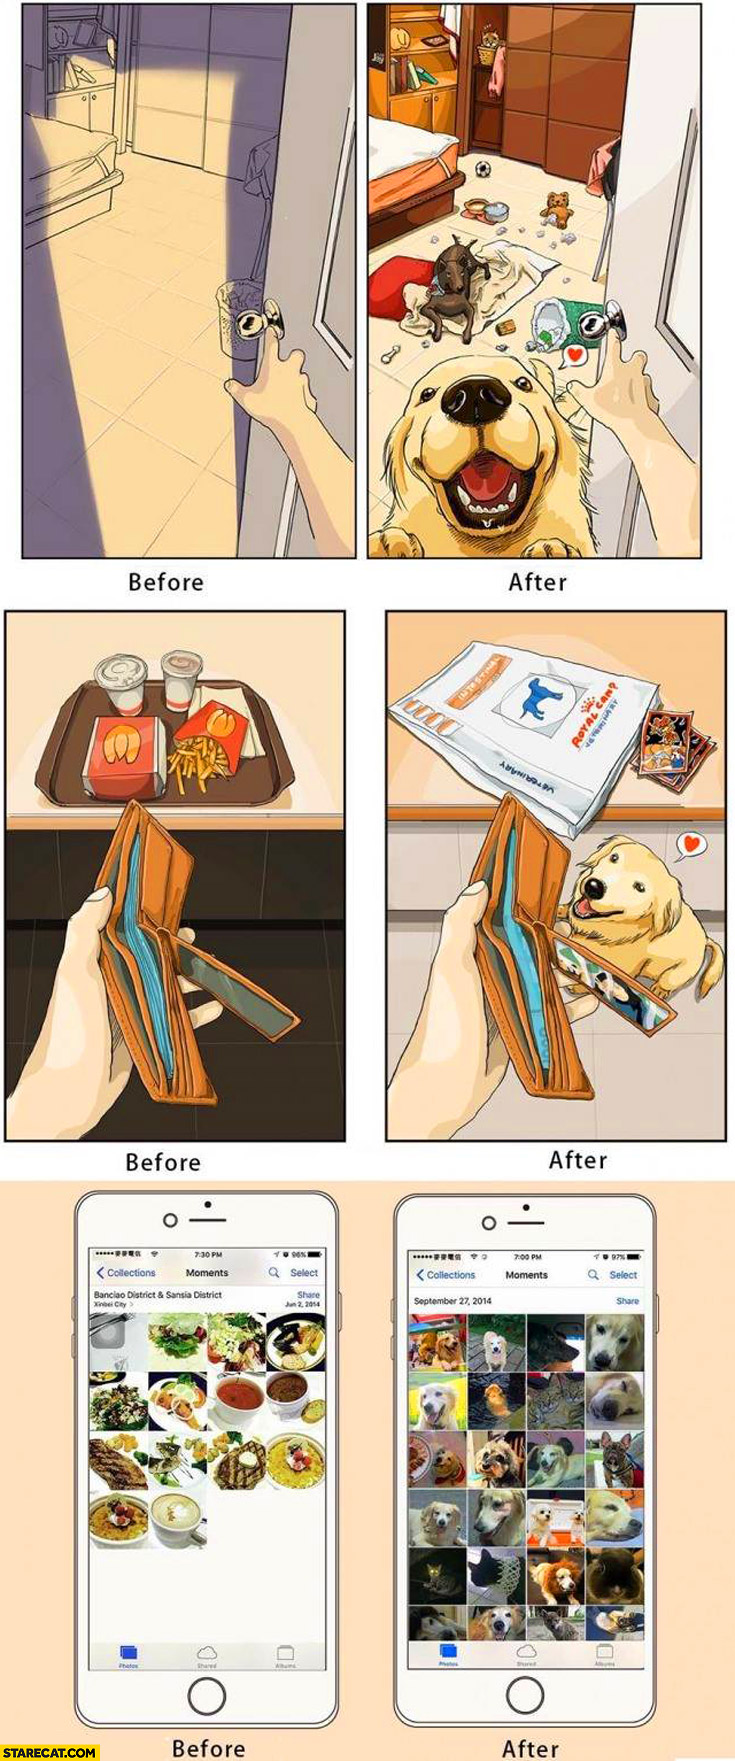 Having dogs before and after comparison